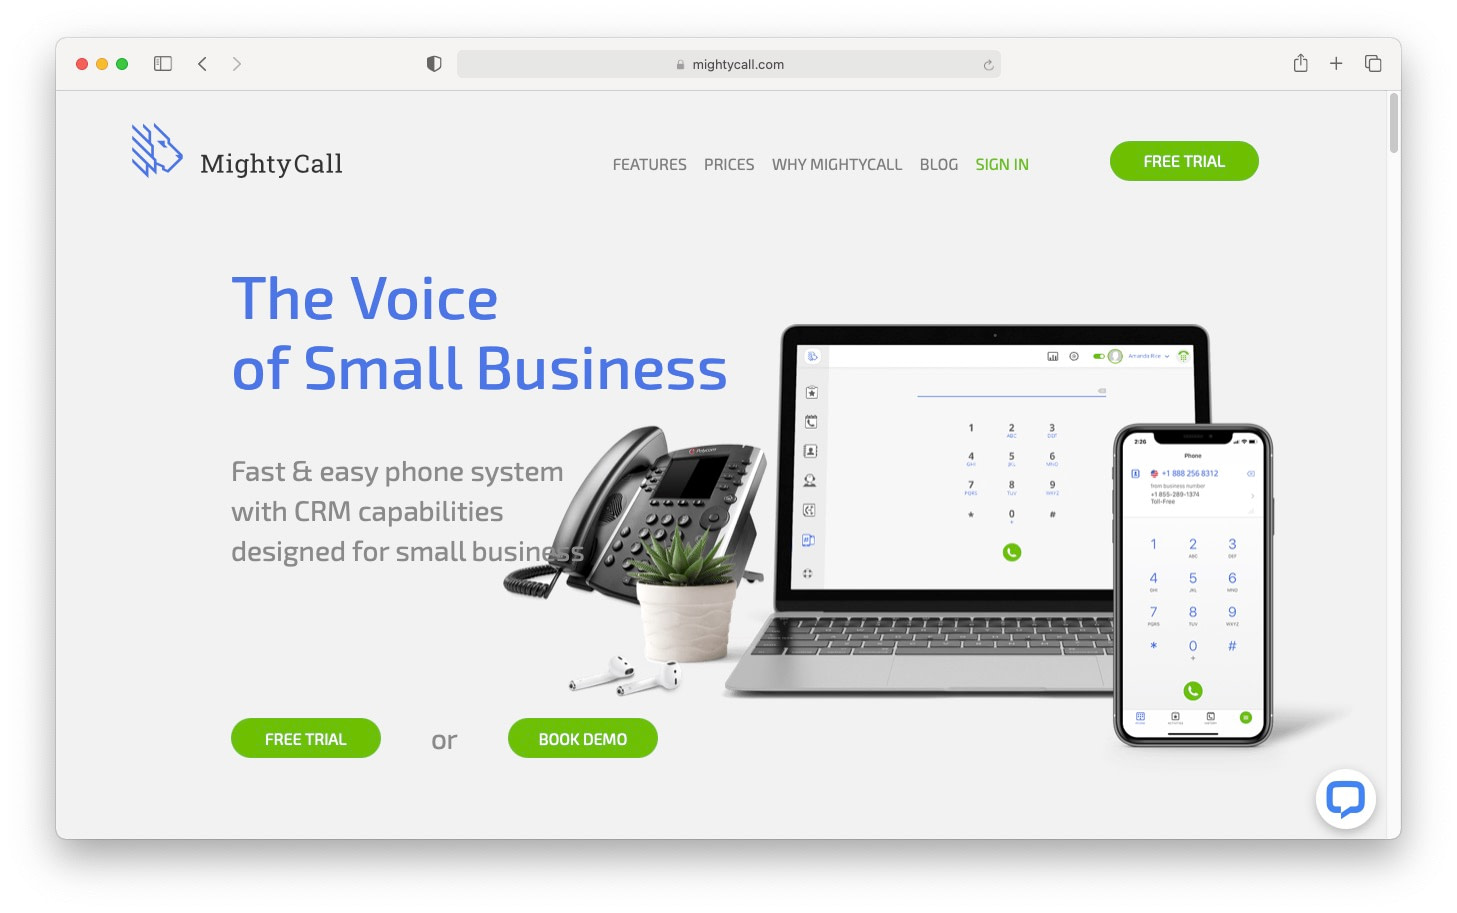 MightyCall is one of the virtual phone systems suited to small businesses